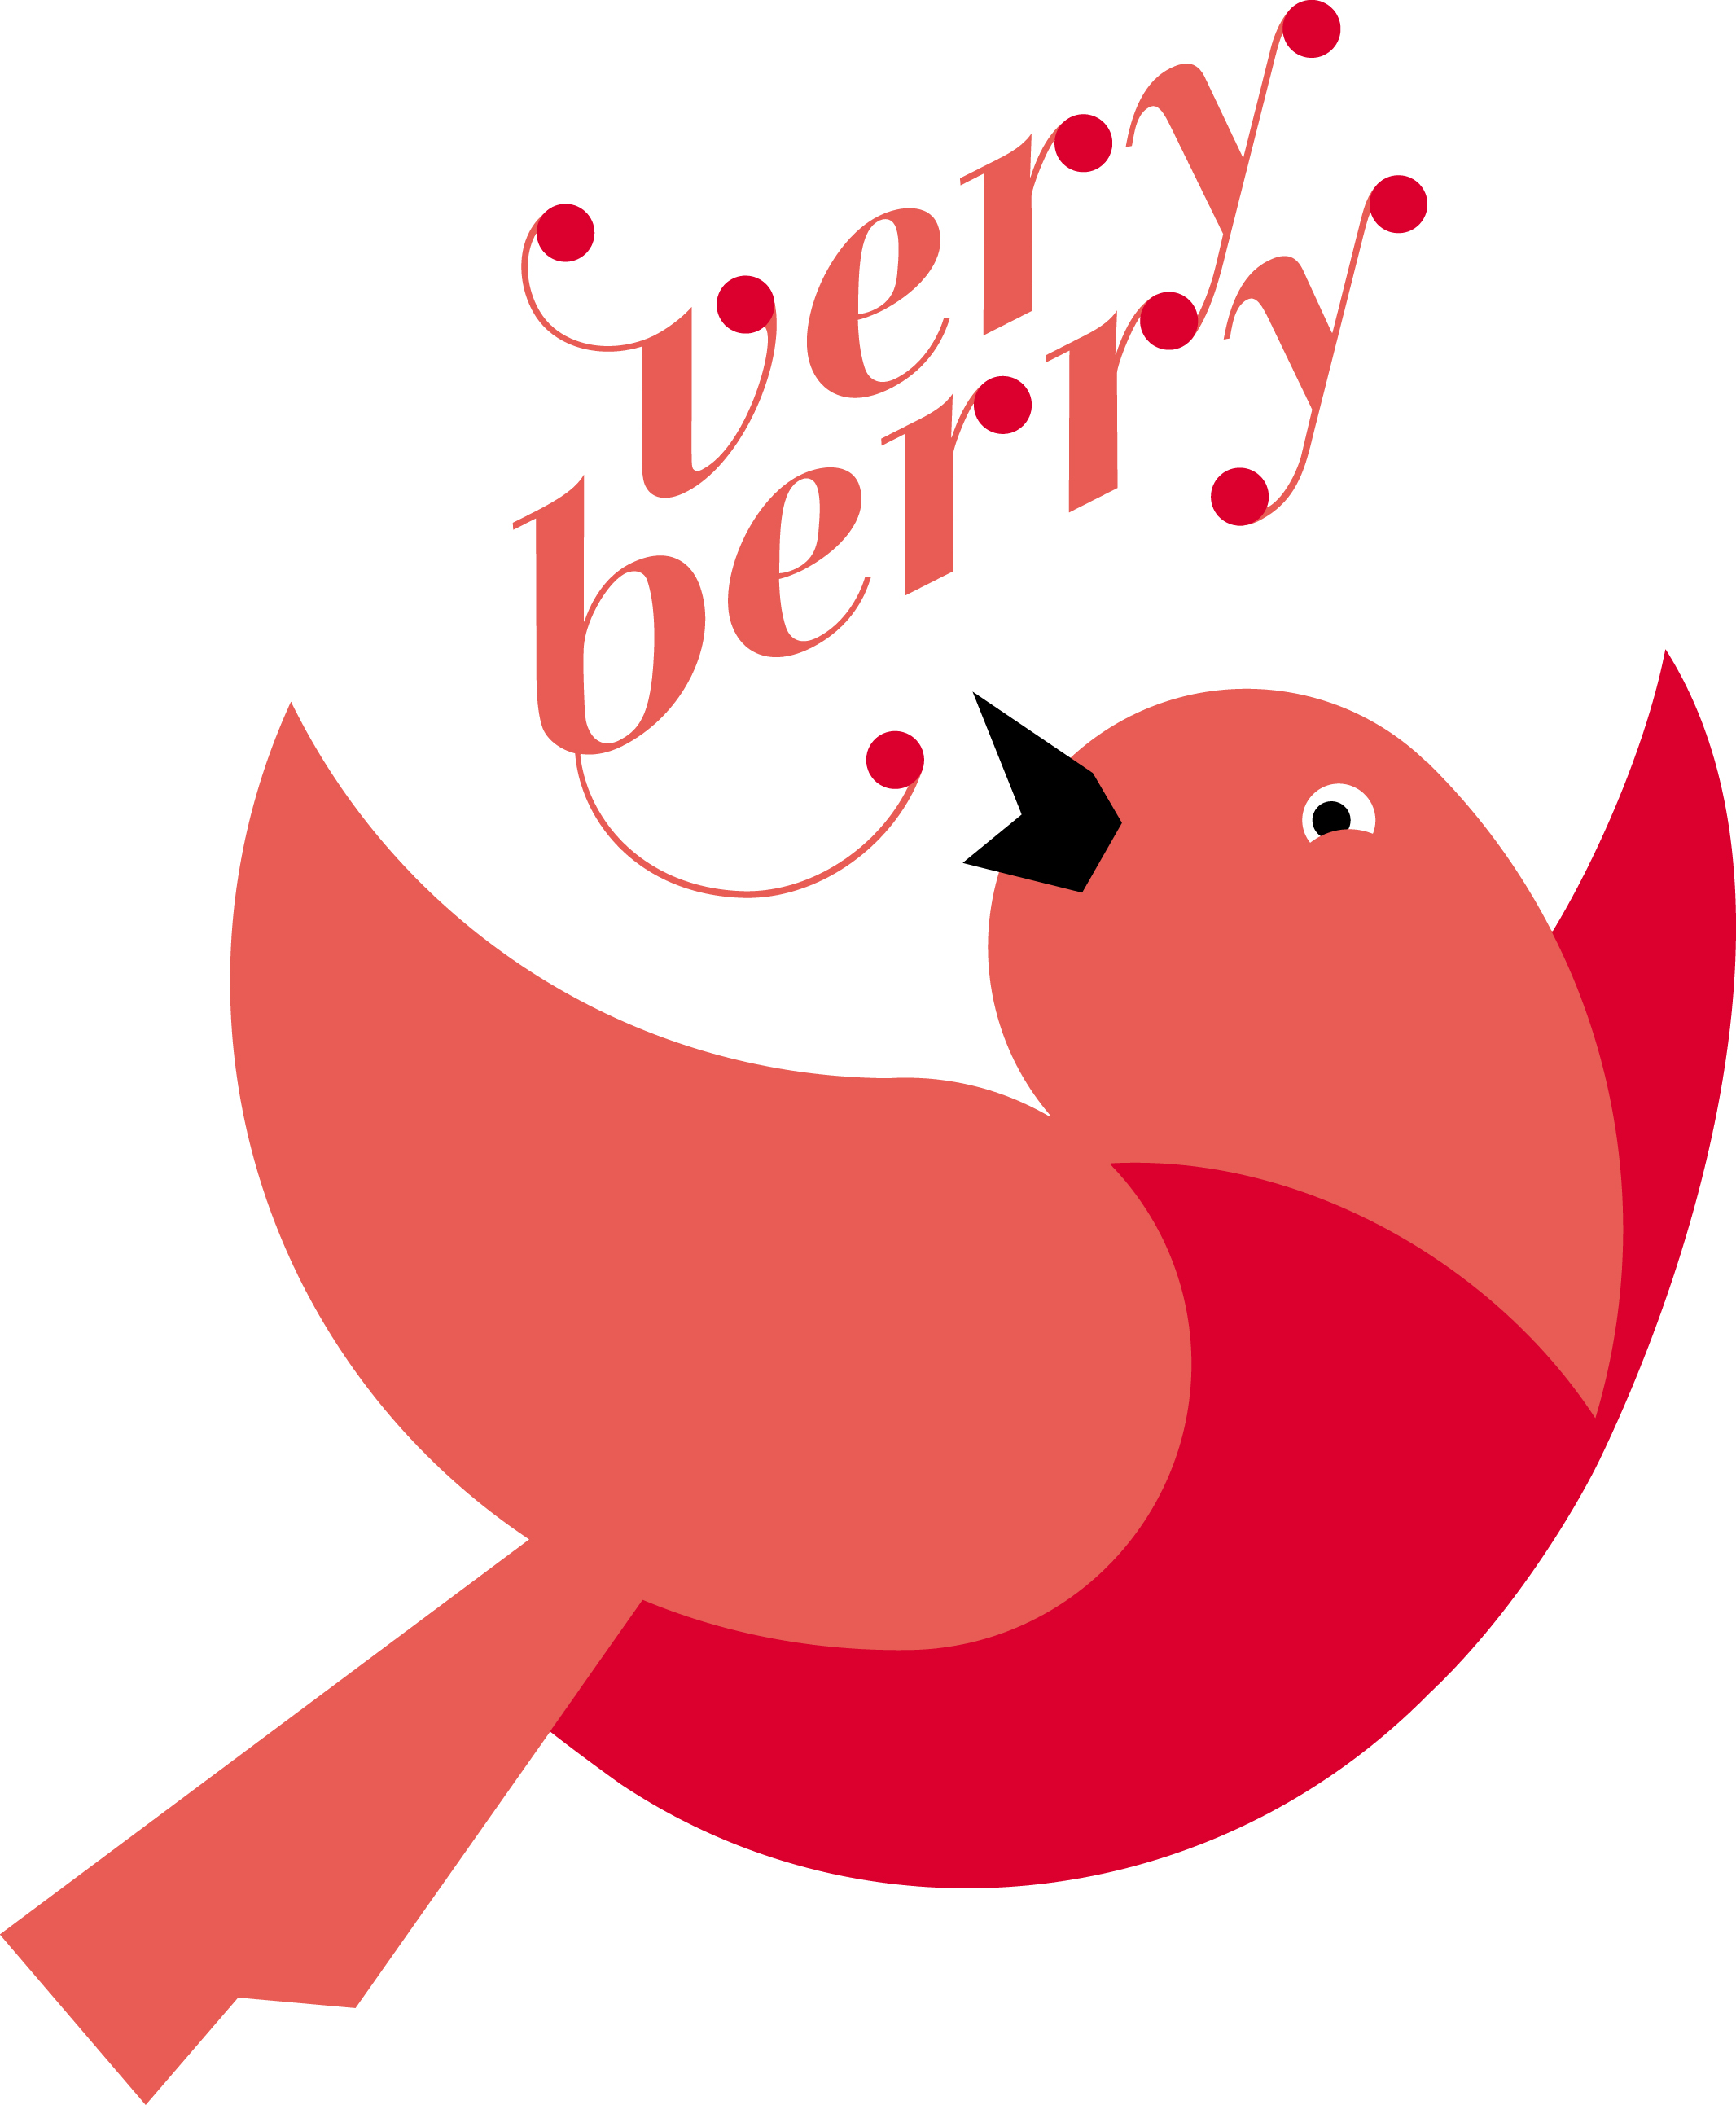 VeryBerry-logo 3 Converted